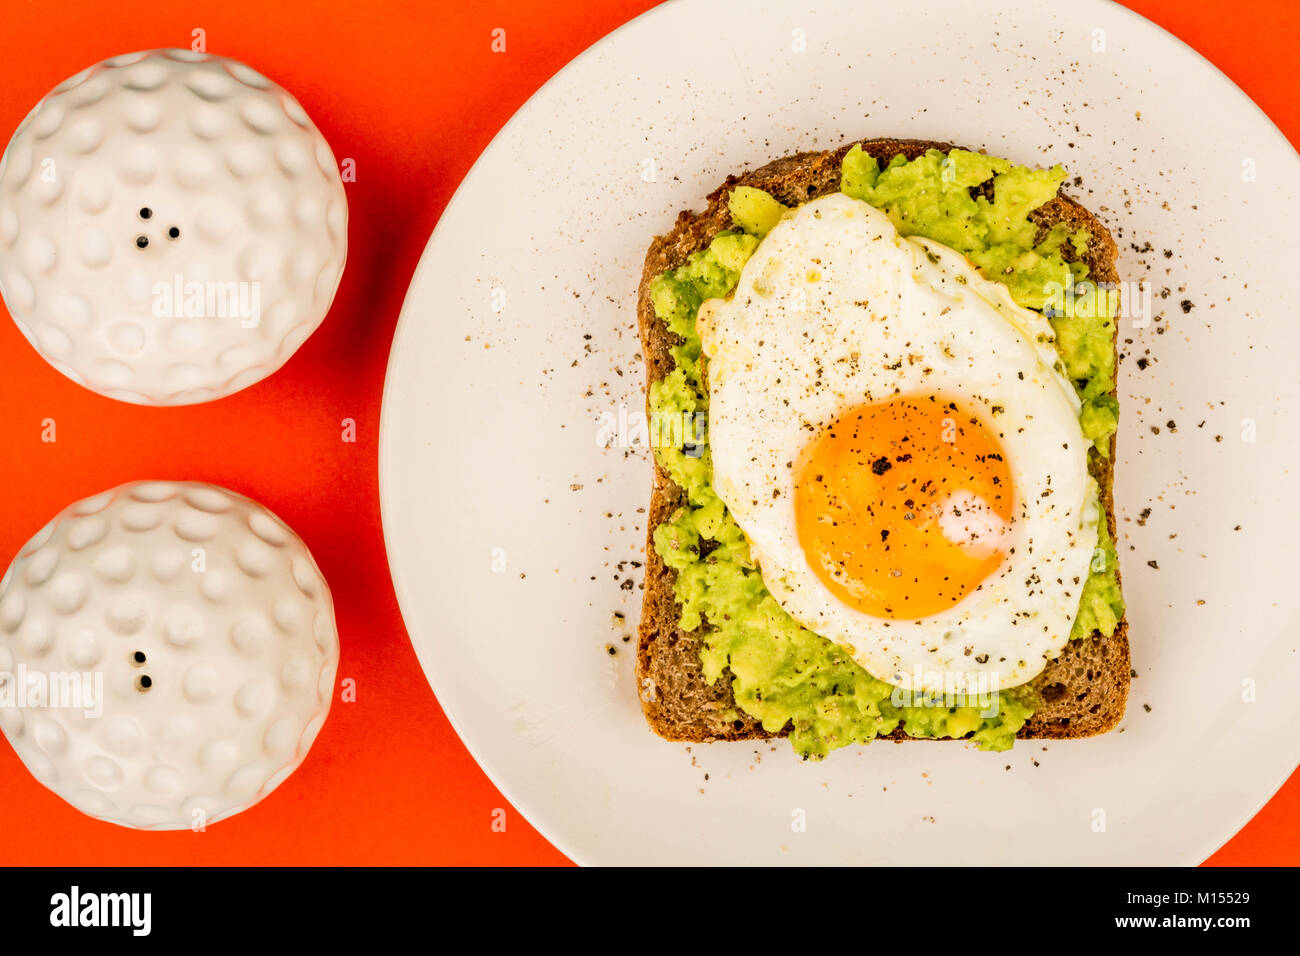 Fried Egg Sunny Side Up on Crushed Avocado And Rye Bread Open Faced Sandwich Against A Red Background - Stock Image